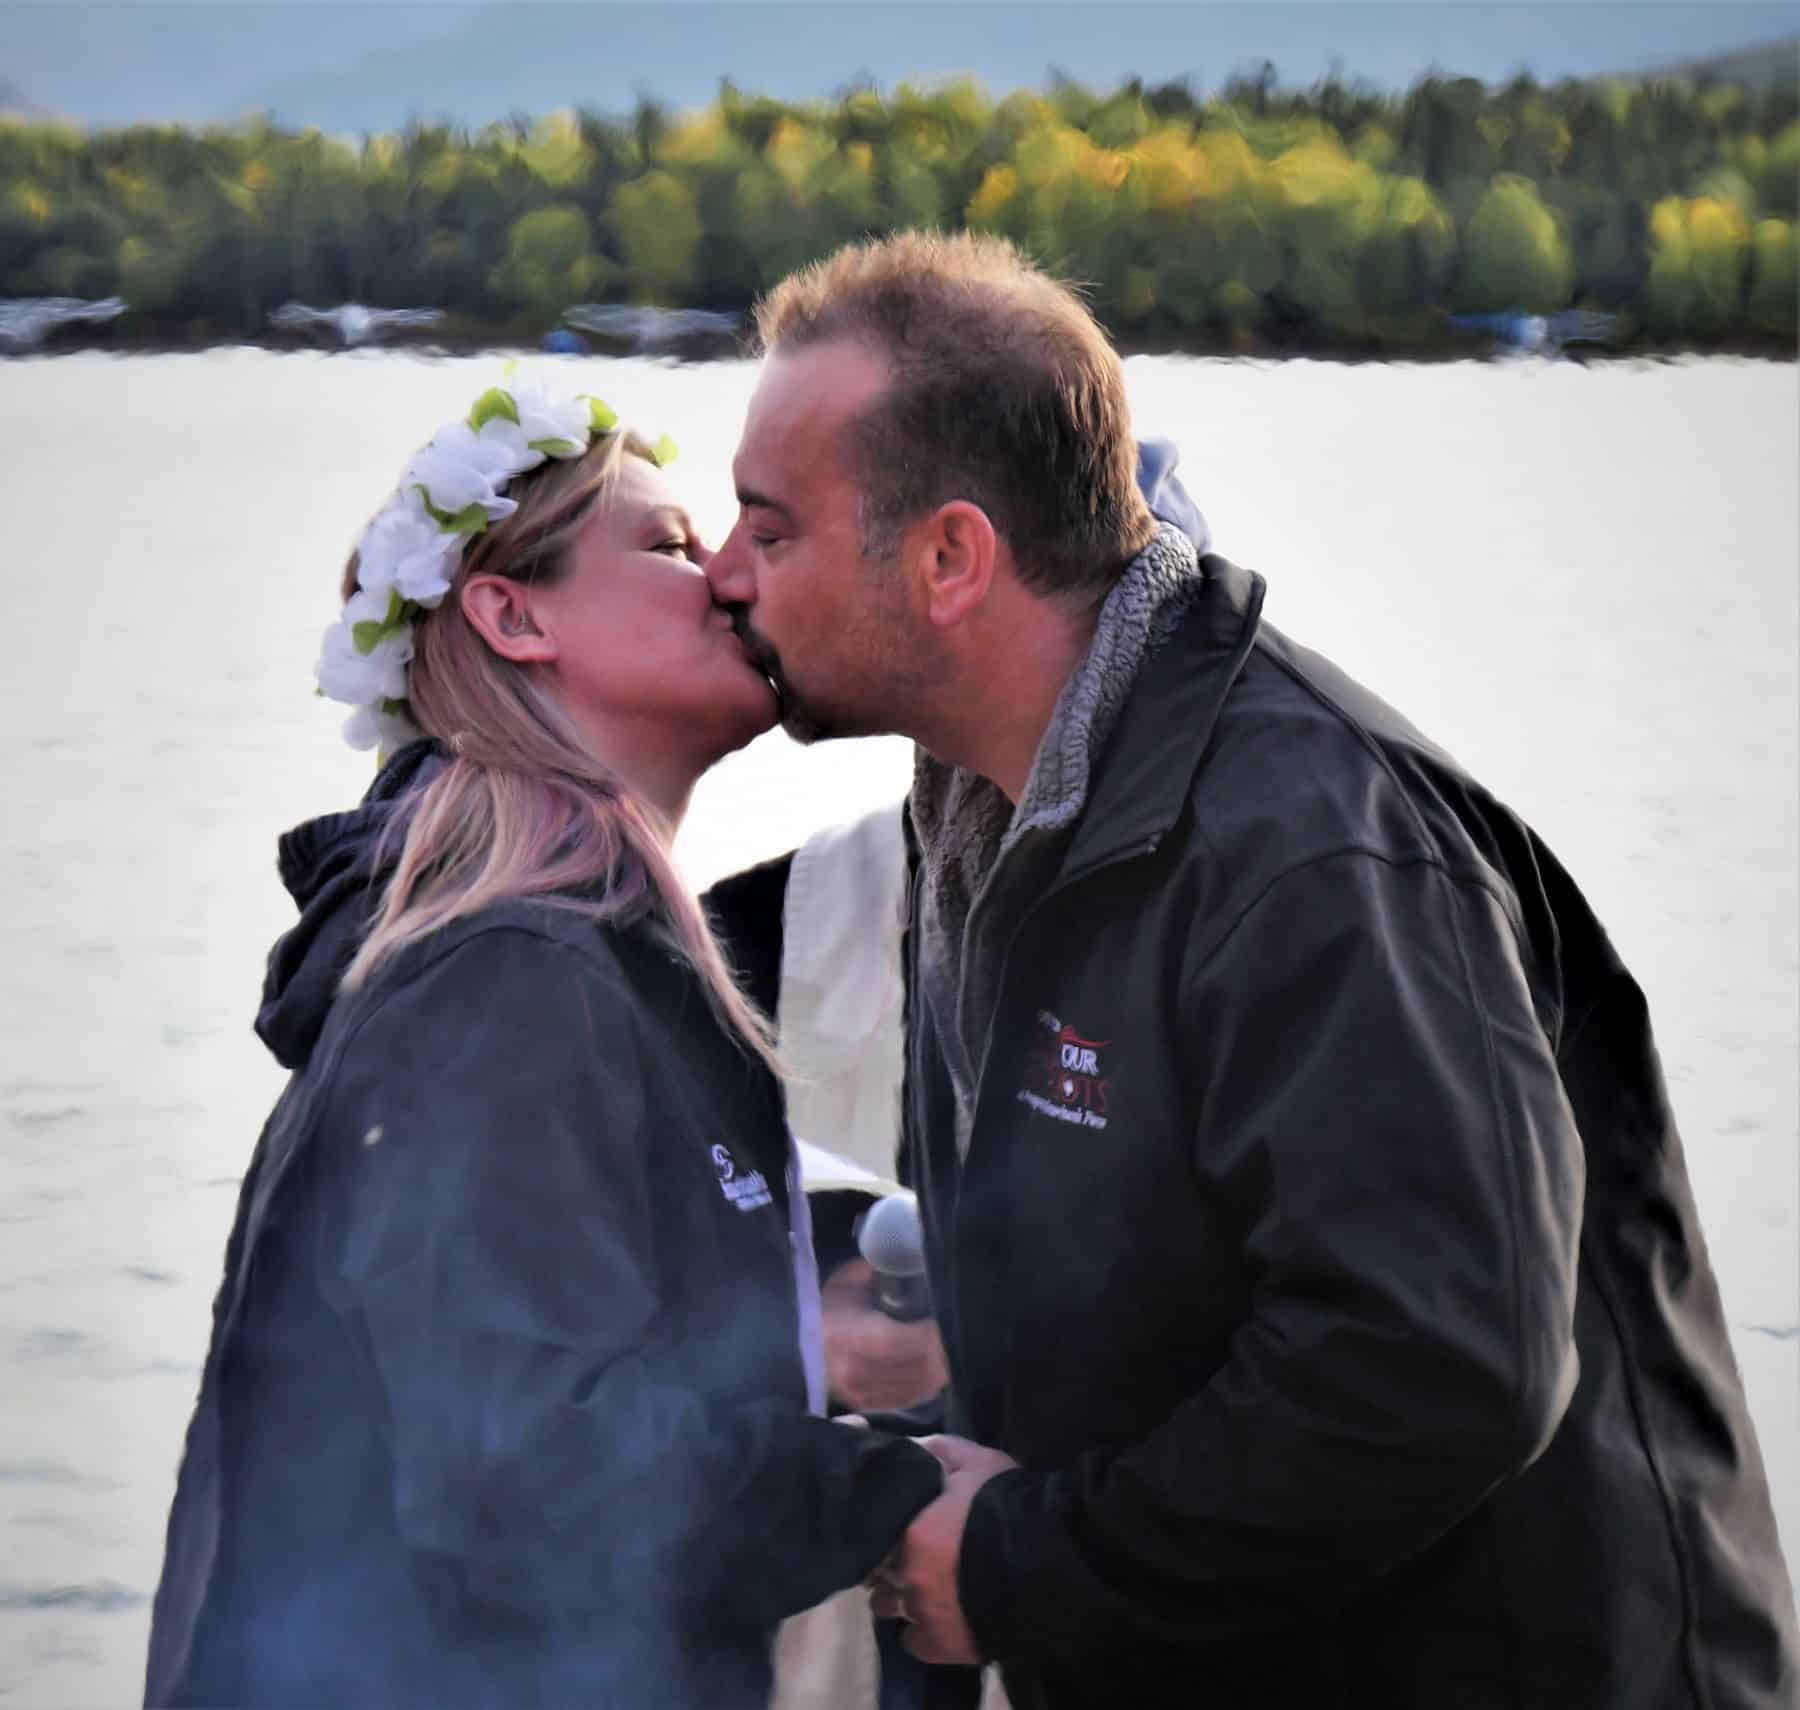 Two Canadian couples, including Patrick and Jennifer, renewed their wedding vows, pledging a new life with each other and with God in their marriage.